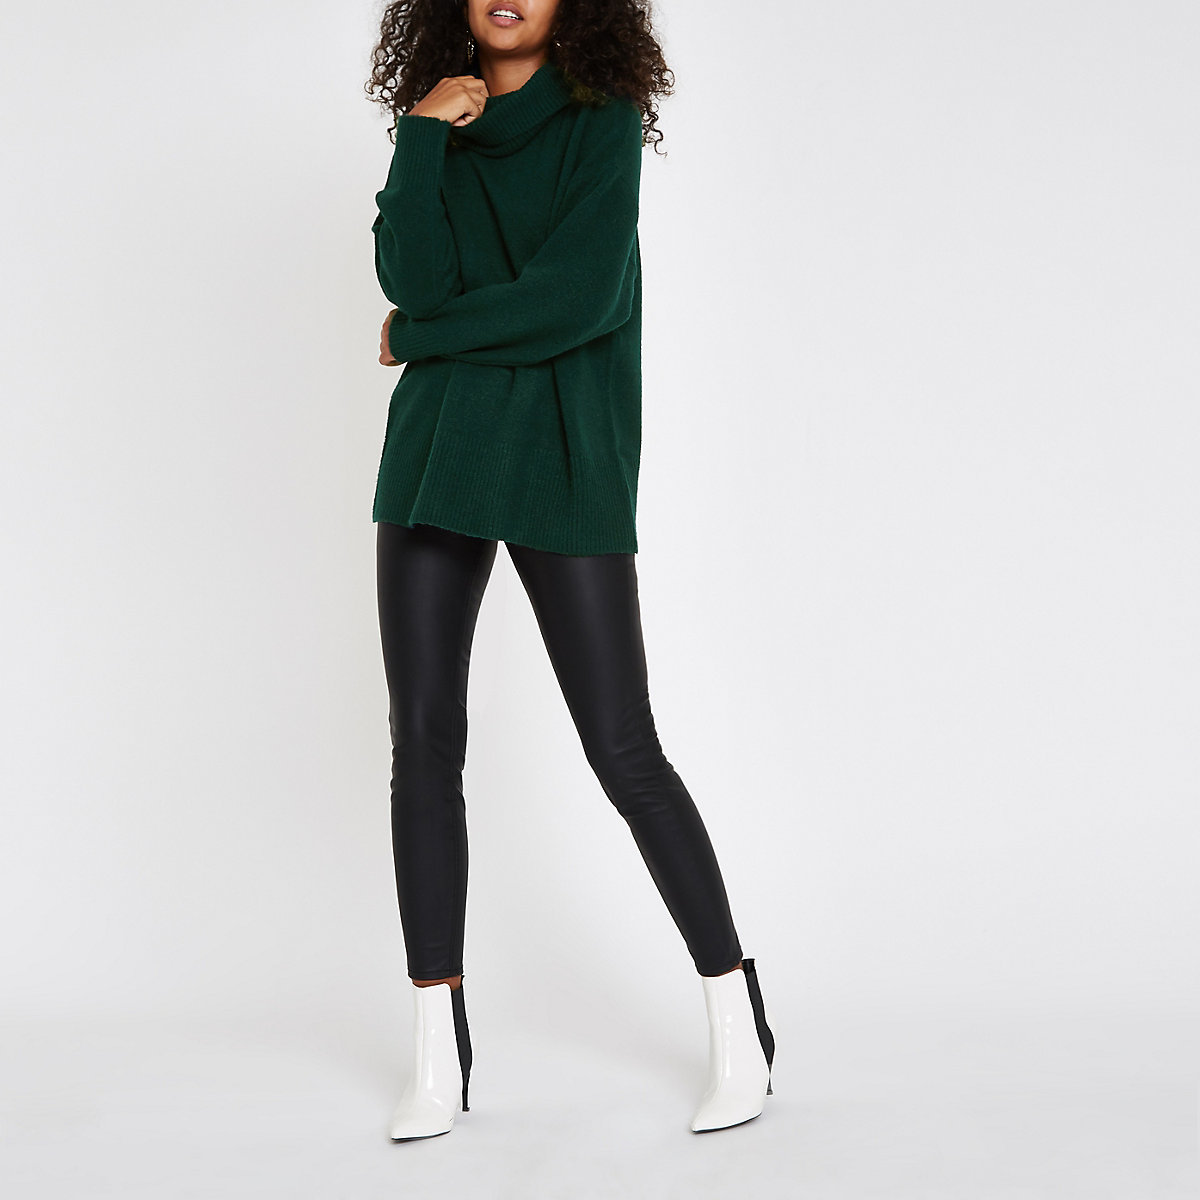 Dark green oversized roll neck sweater